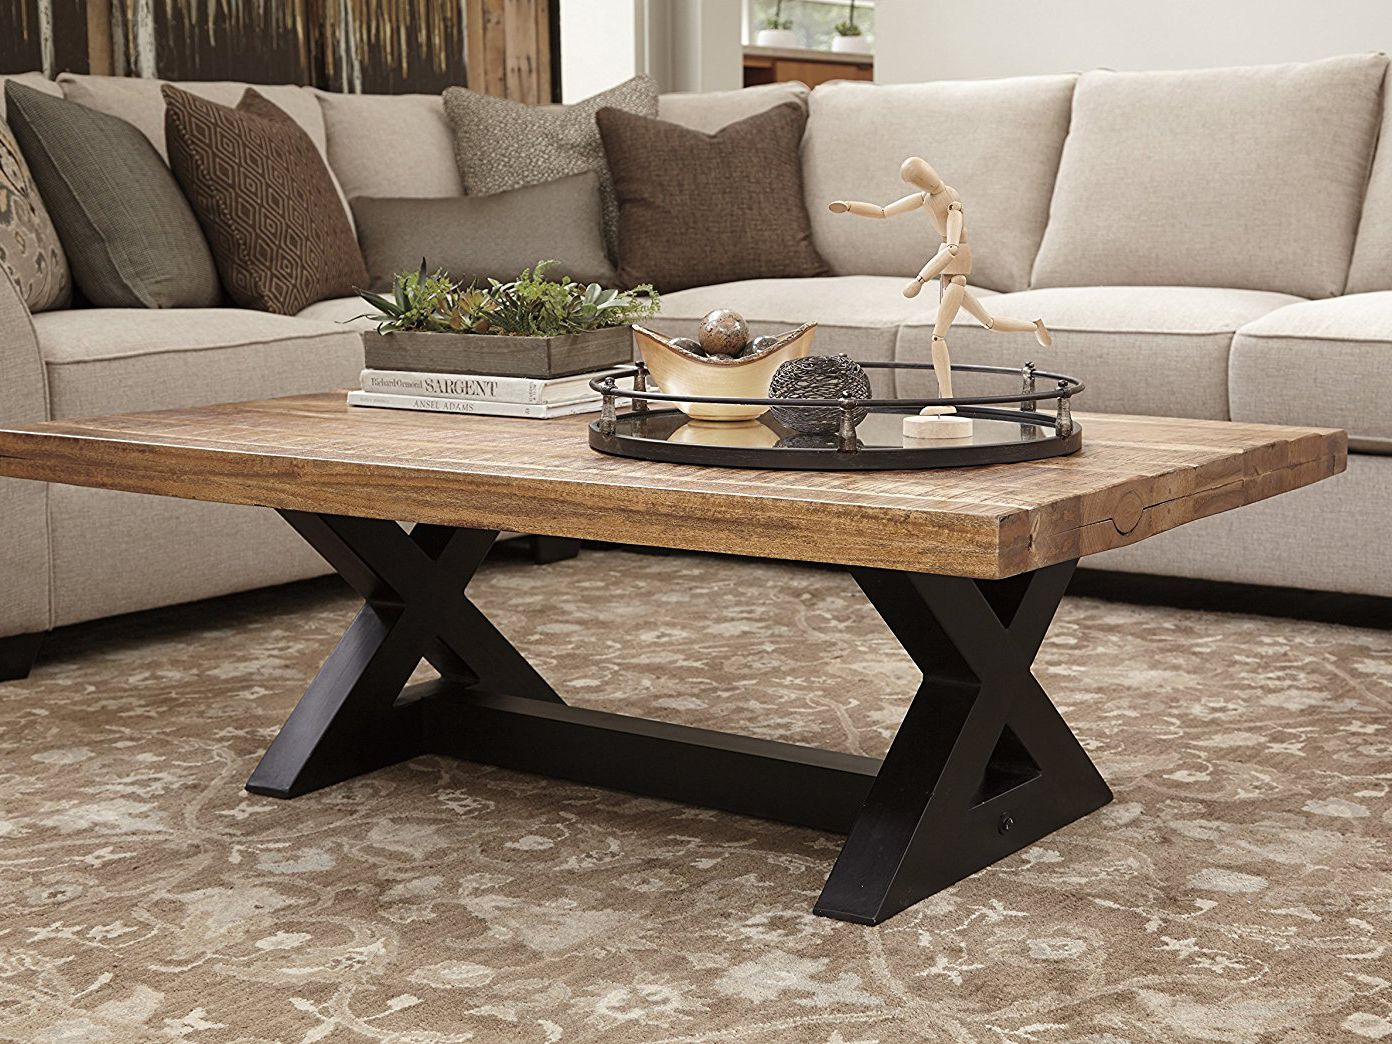 Brilliant The 8 Best Coffee Tables Of 2019 Home Interior And Landscaping Fragforummapetitesourisinfo